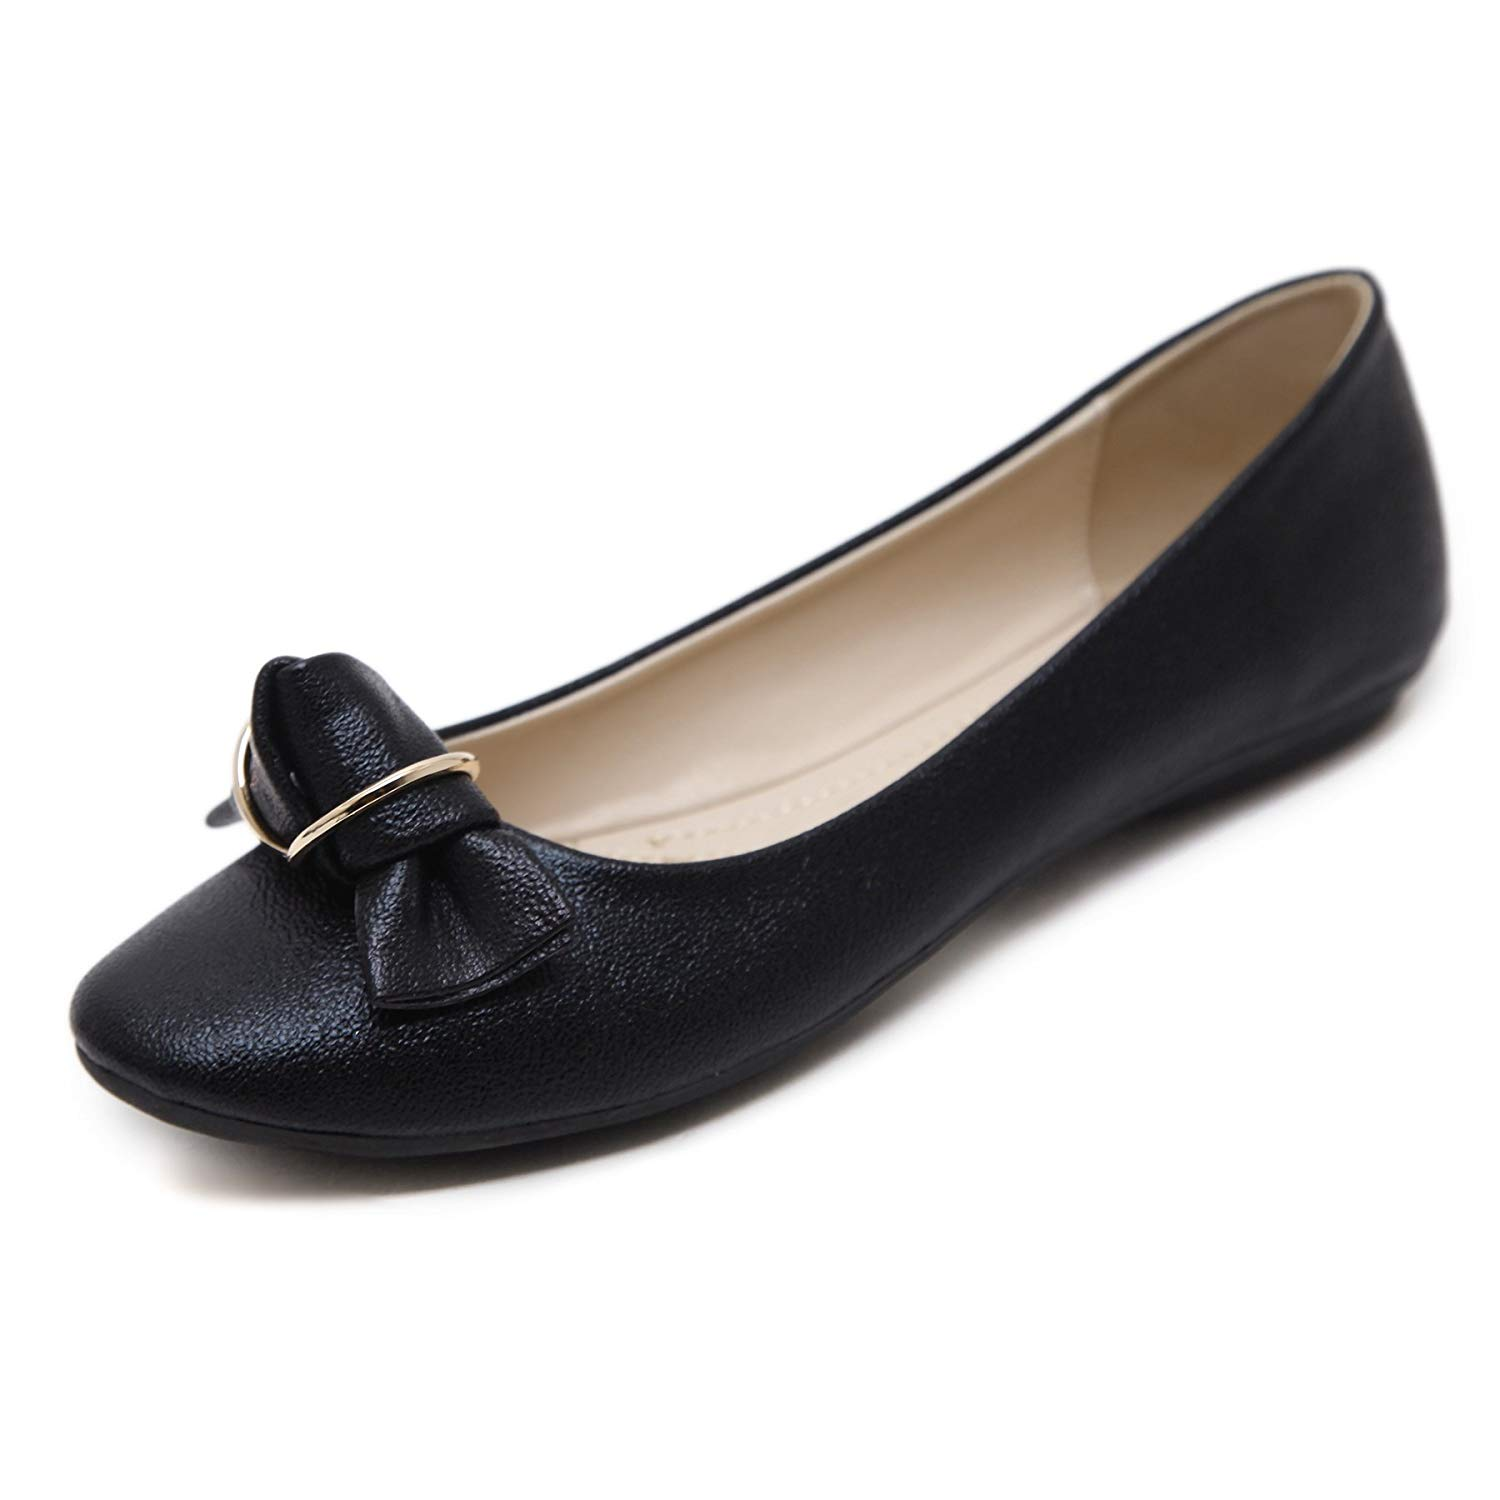 315d54313ae Get Quotations · Meeshine Women s Ballet Flats Comfort Slip On Fashion  Dress Shoes